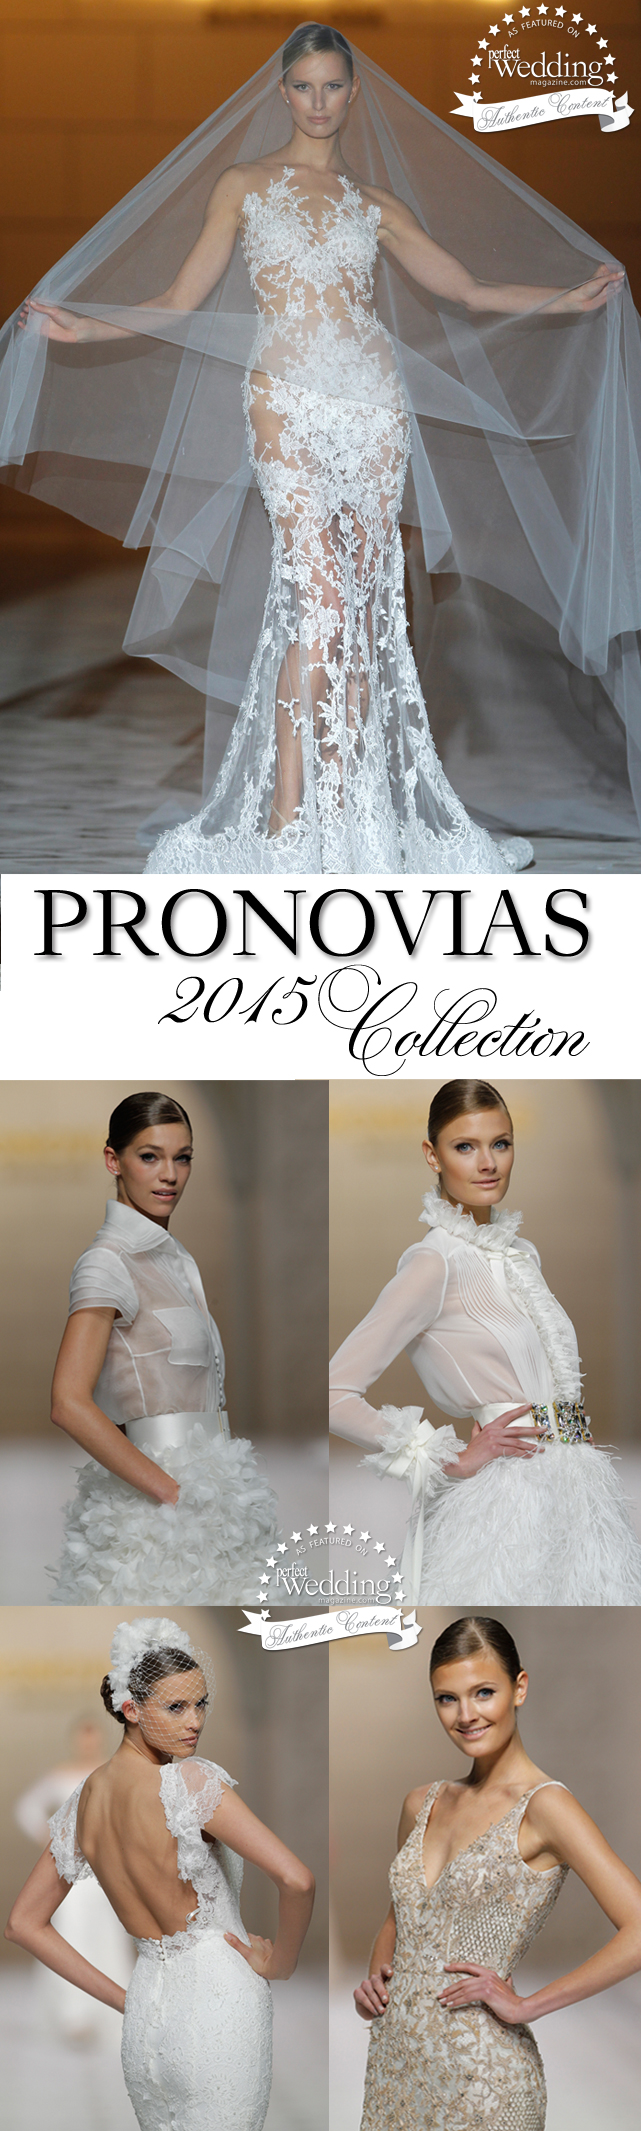 Pronovias, Pronovias 2015 Collection, Atelier Pronovias 2015, Pronovias 50th Anniversary, Perfect Wedding Magazine, Perfect Wedding Magazine Blog